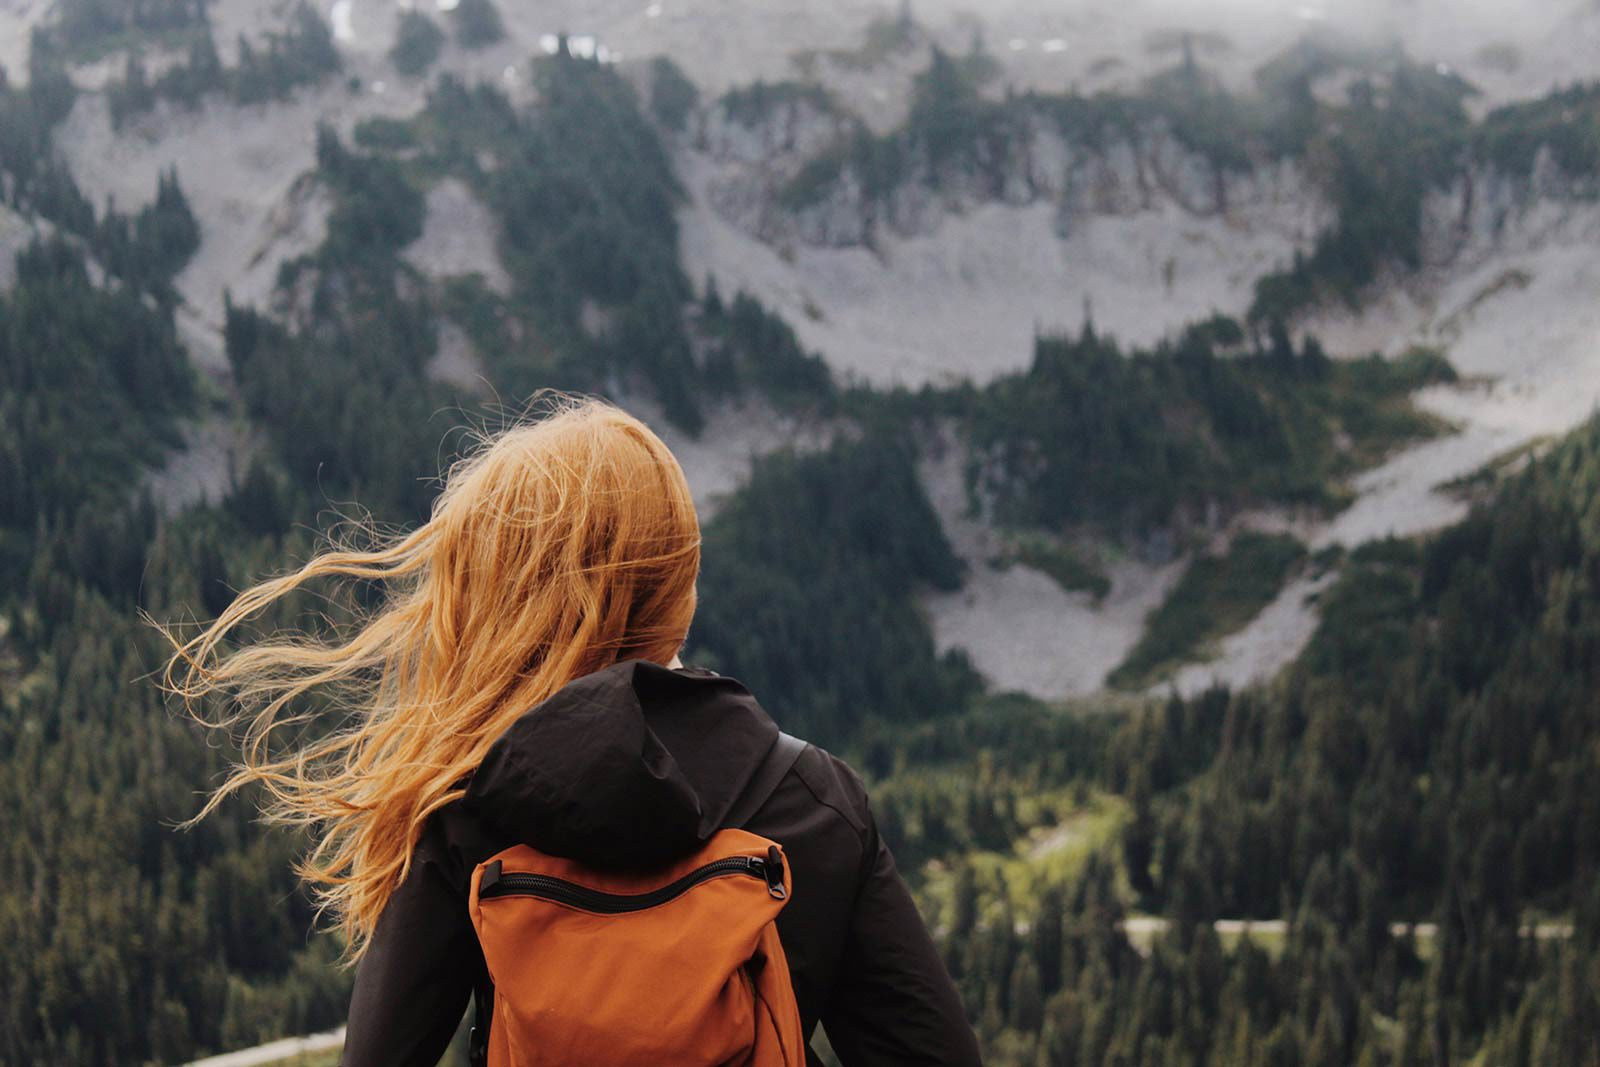 Back of woman with backpack and hair blowing looking and mountains.